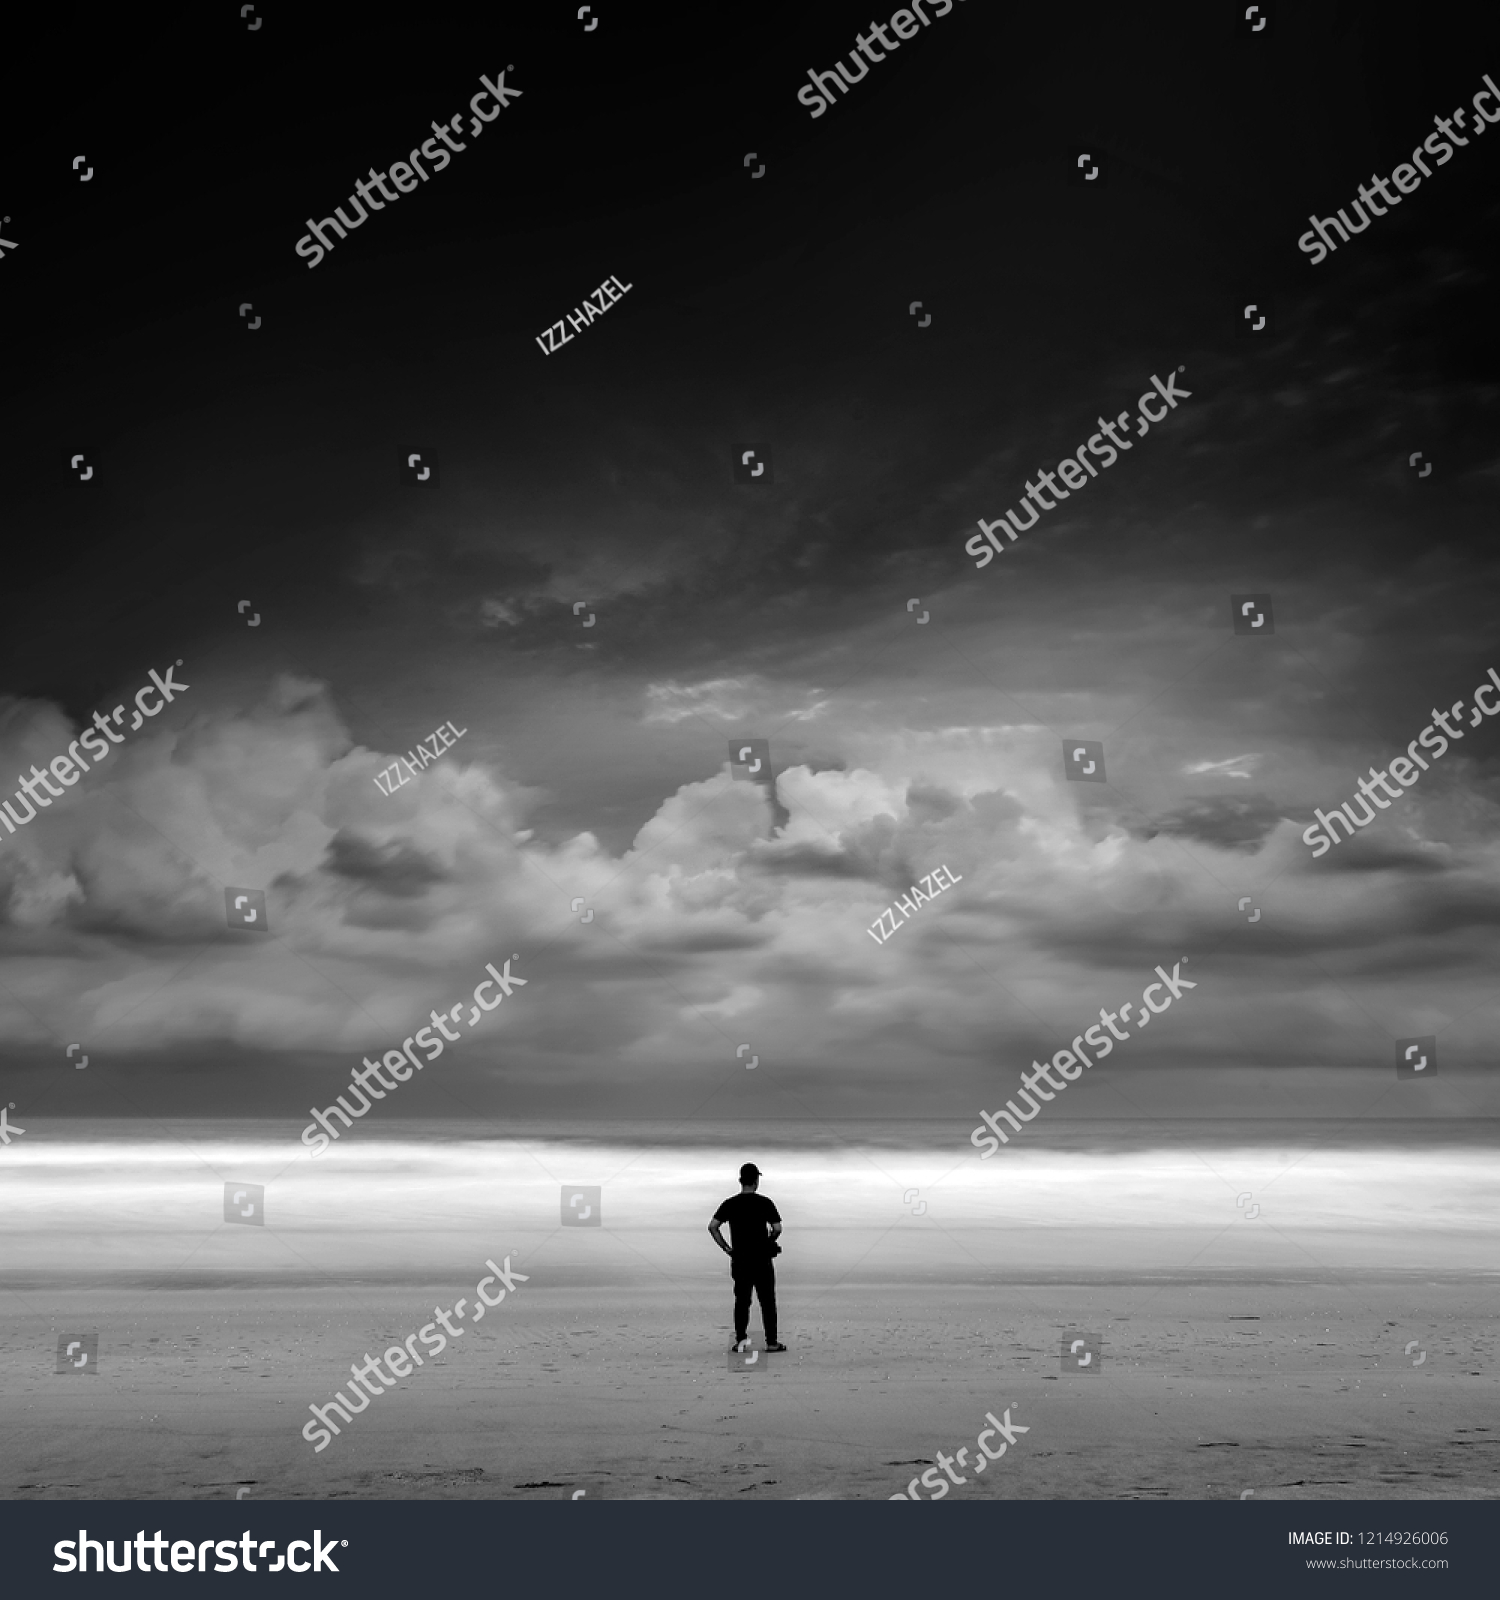 Lonely boy alone looking at the horizon near the beach during storm black and white